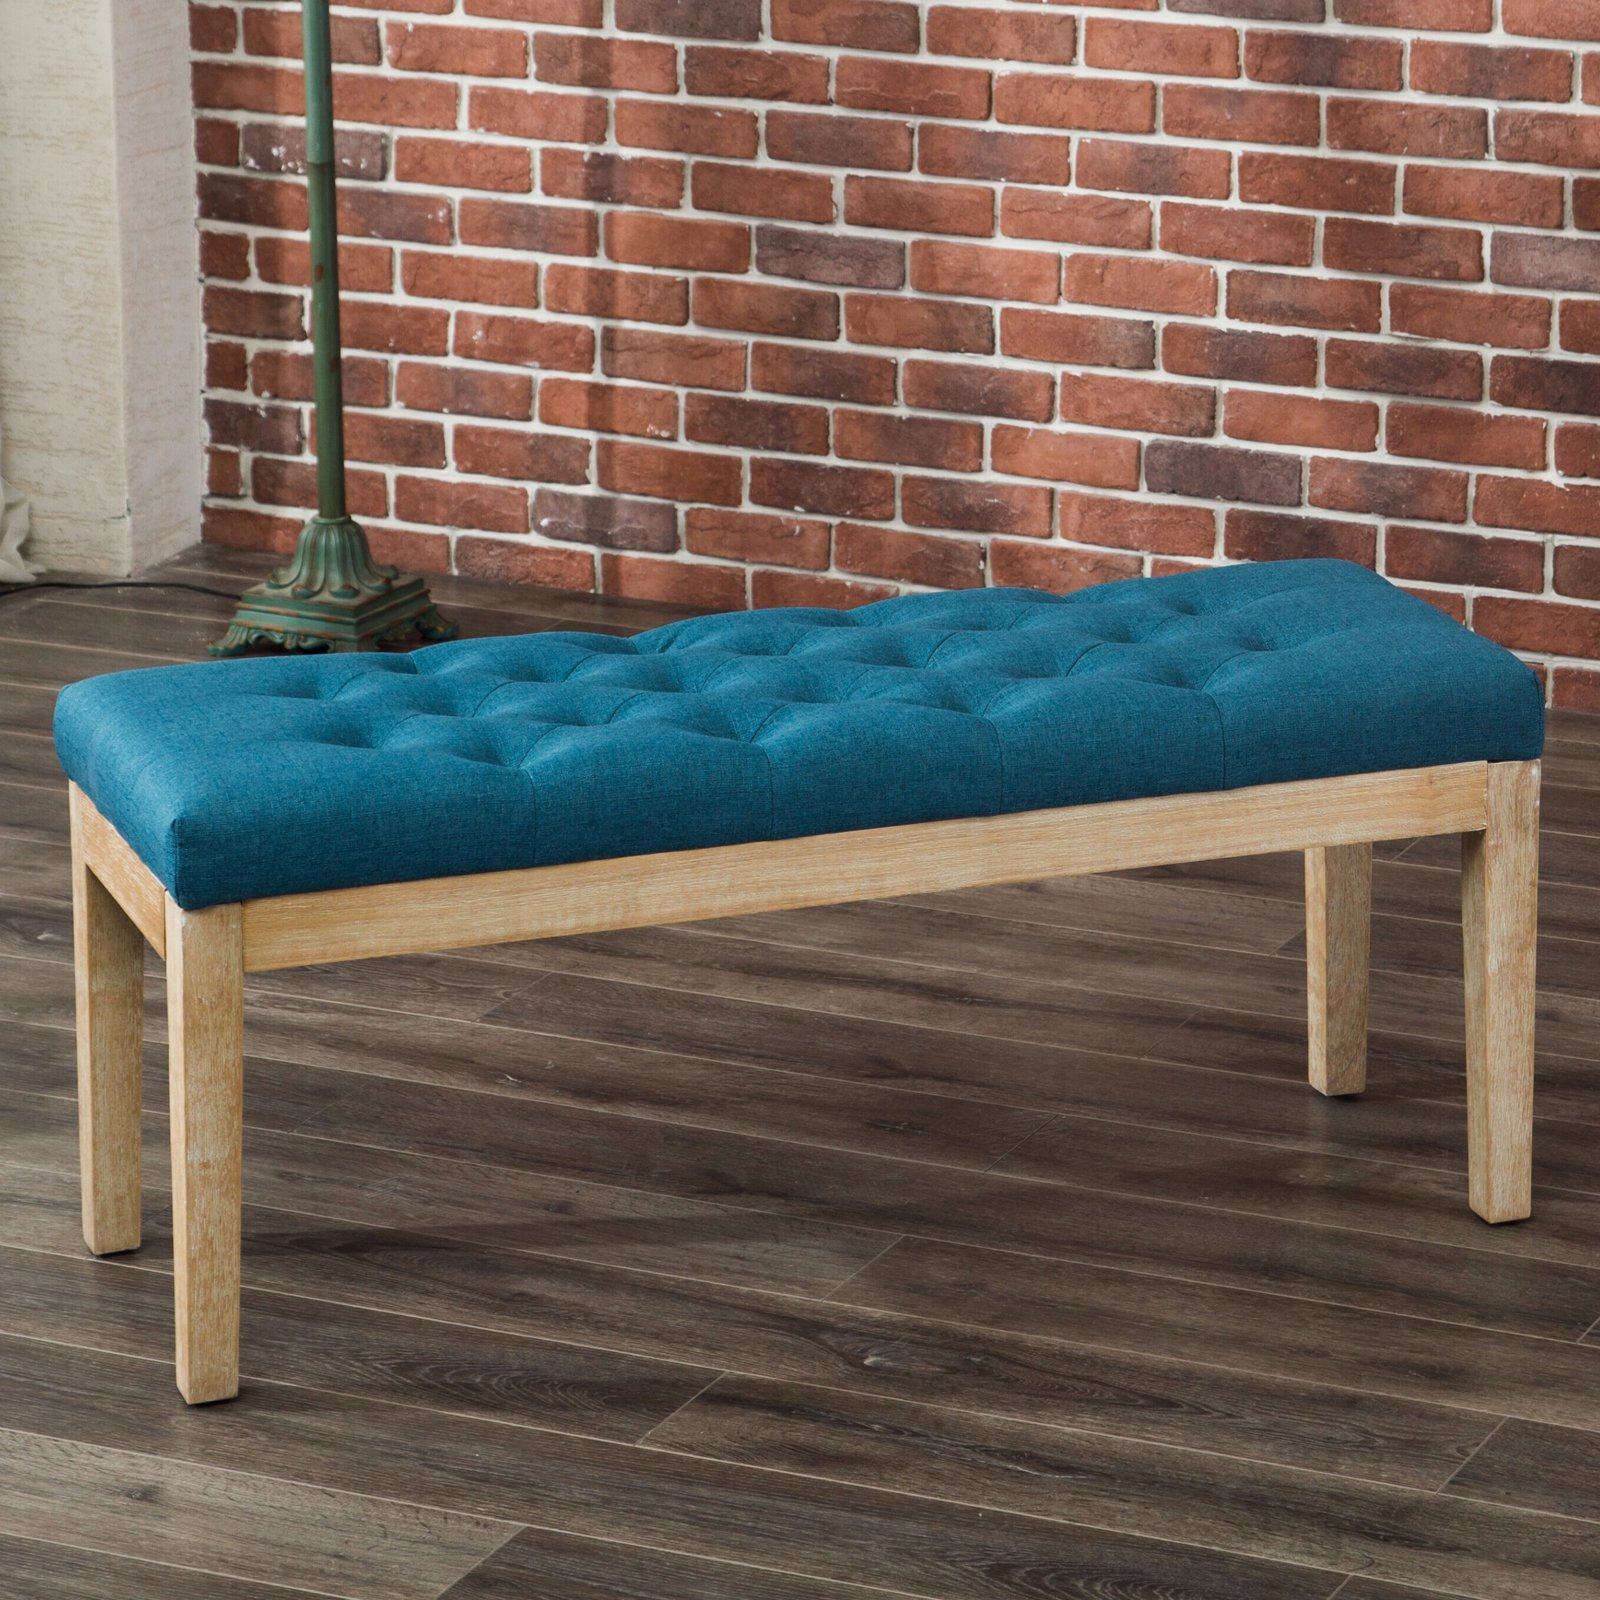 Delicieux Roundhill Mod Urban Style Solid Wood Button Tufted Fabric Dining Bench, Blue